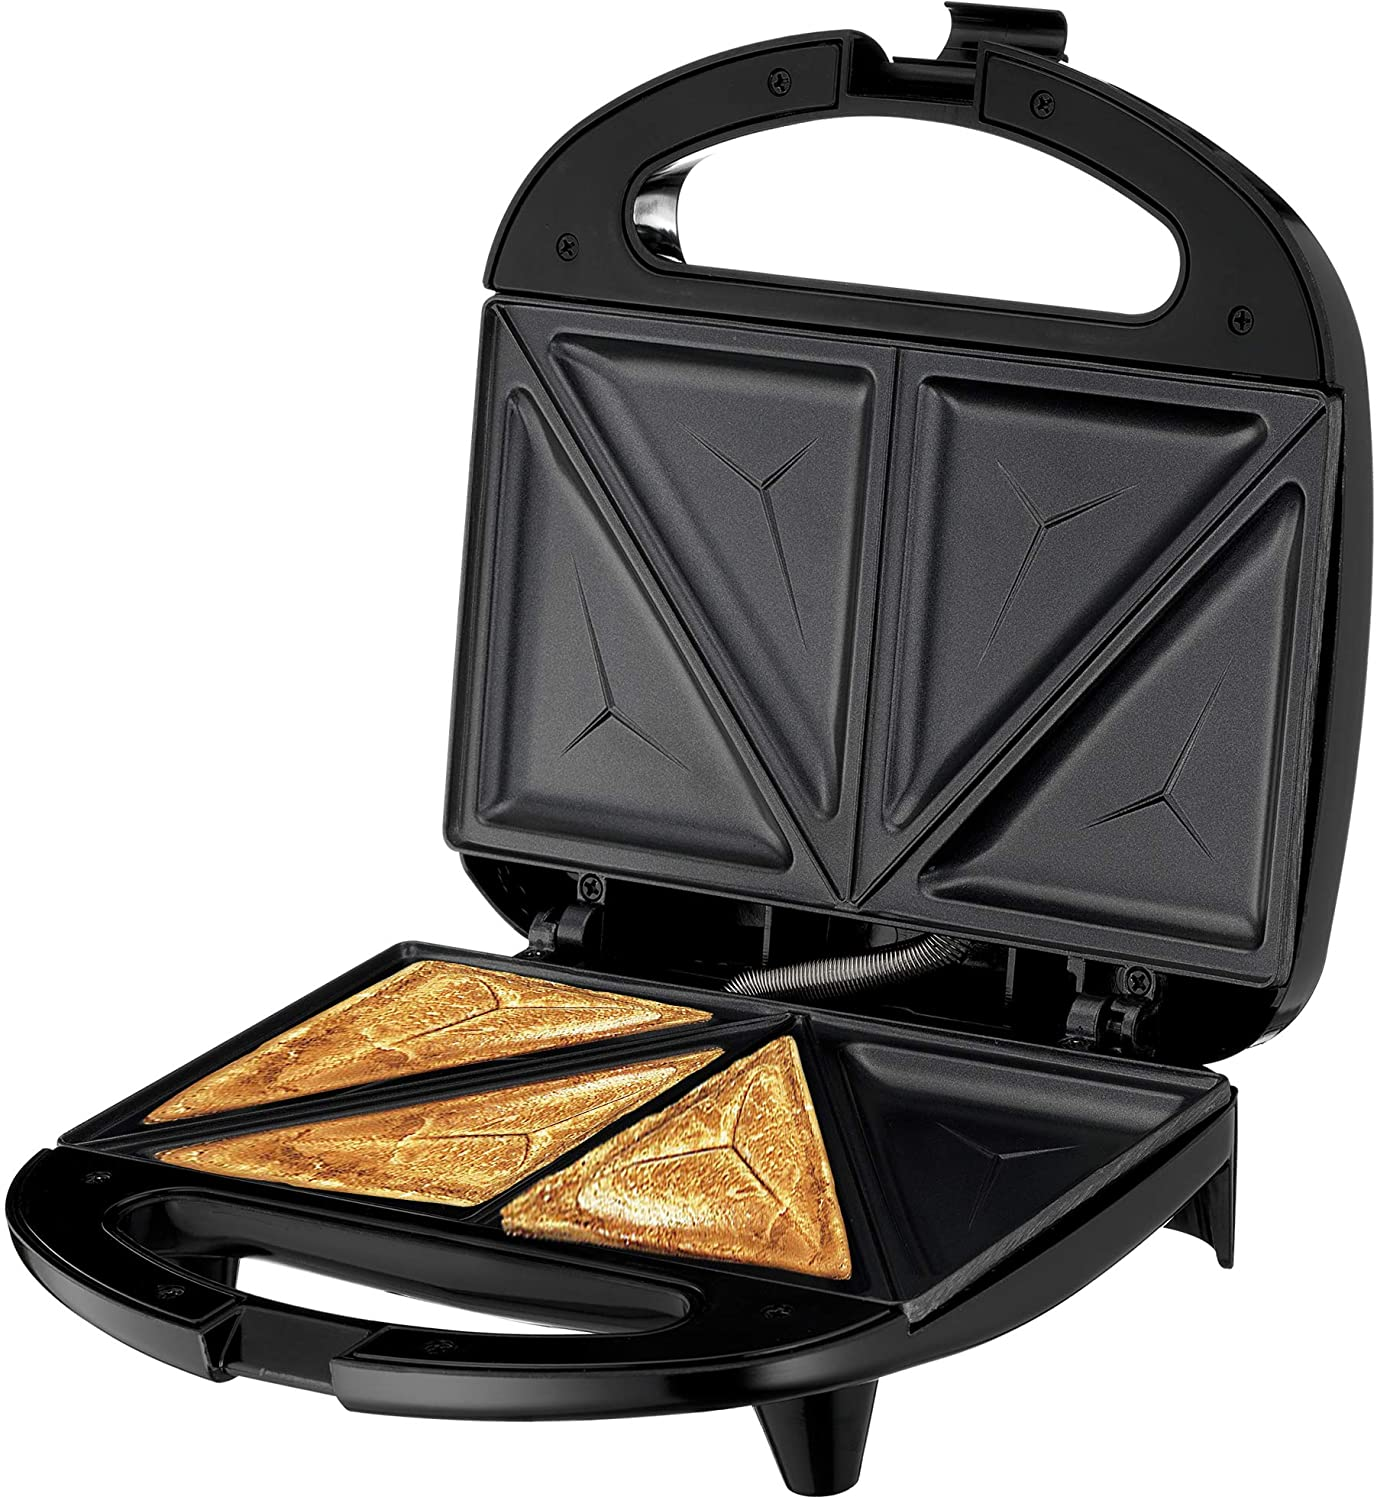 Lumme Sandwich Maker, Sandwich Toaster, Panini Press, Quesadilla Maker, Grilled Cheese, French Toast Press, Pizza Pockets Press, Indicator light, Omelet, White (Black)